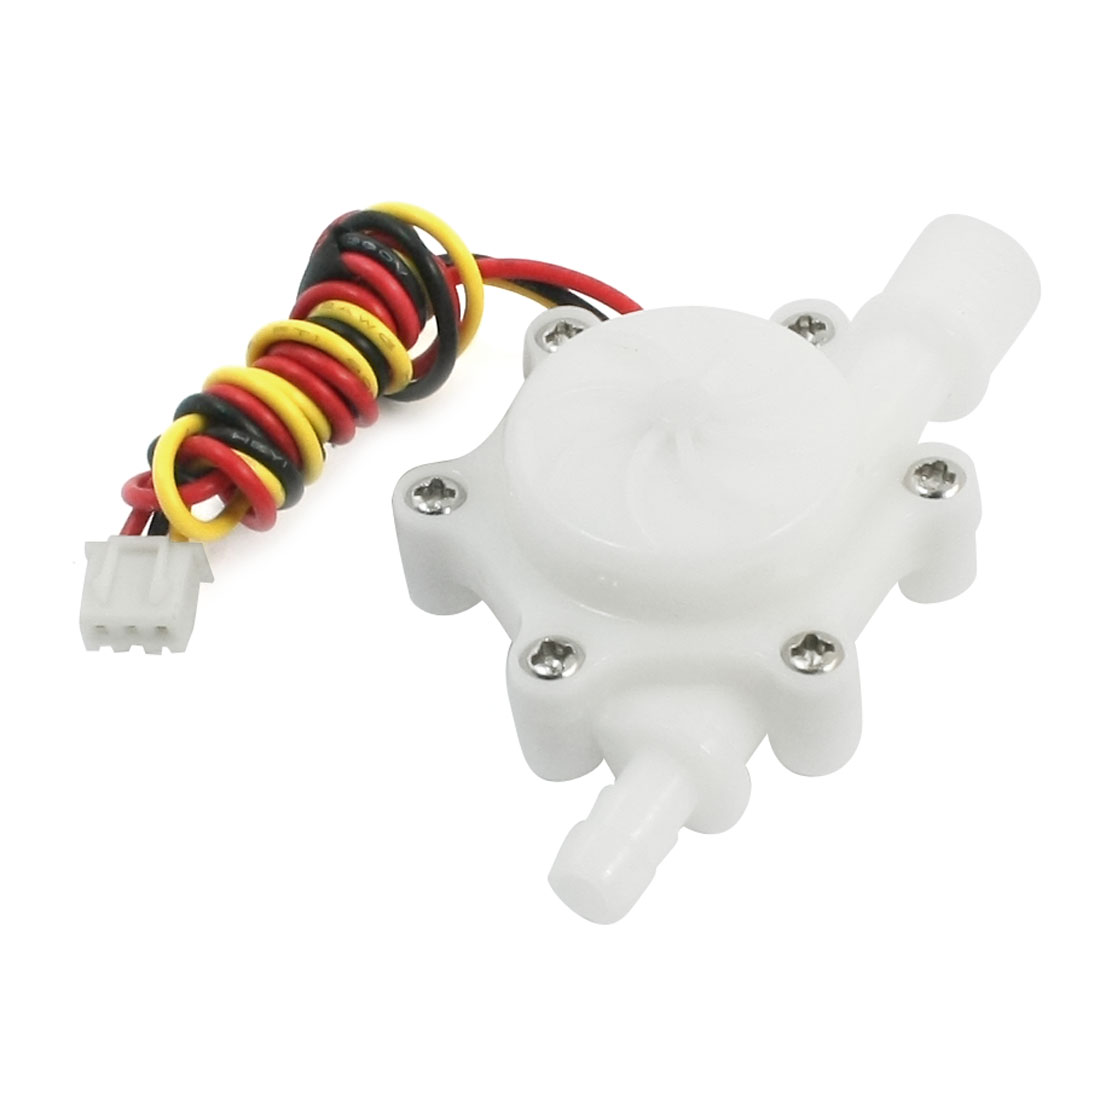 White 0.8Mpa G1/4 Wired Hall Effect Water Flow Sensor 0.15-1.5L/min